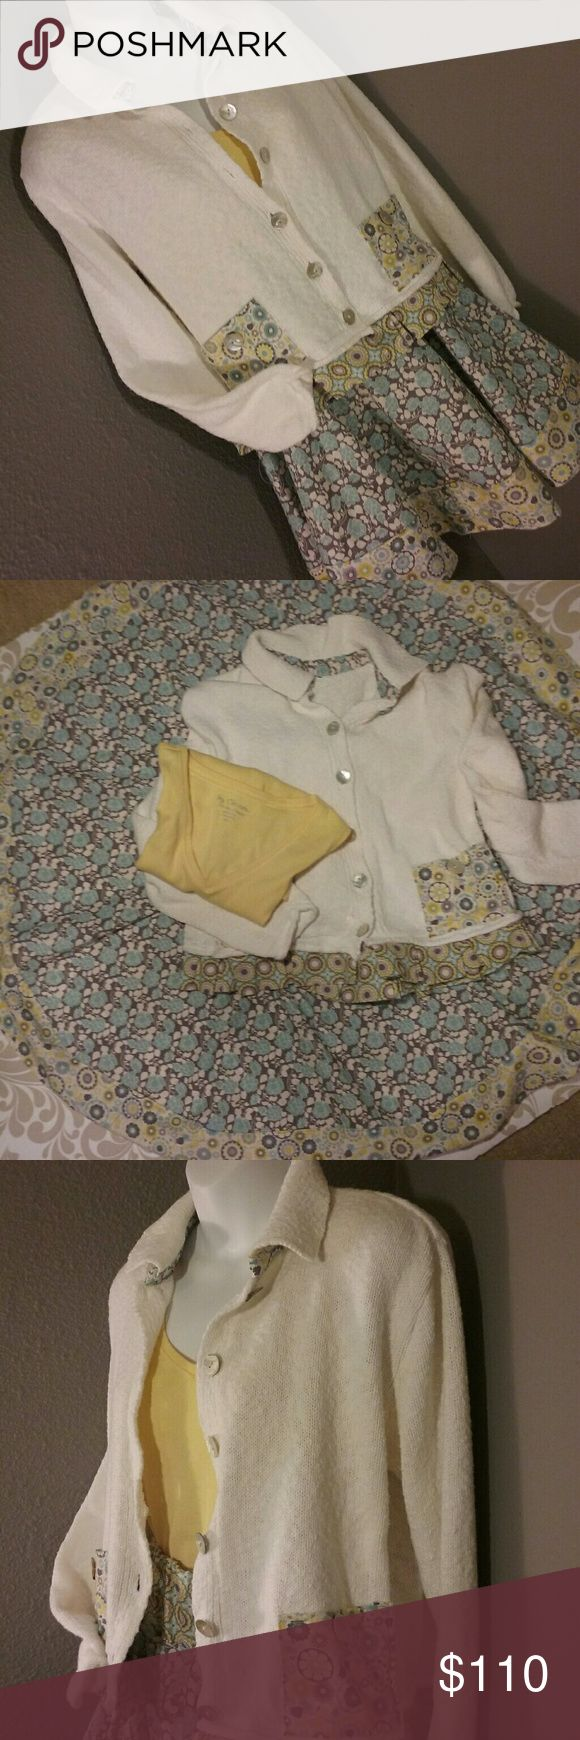 """COUTURE Tiffany blue yellow skirt sweater set M Absolutely one of a kind. Tiffany blue flowers, yellow and grey in 3 whimsical coordinating patterns.This 100% cotton sweater came missing a pocket,  and the cut and weave were such that it had to be saved! 19"""" circle skirt with 28-40"""" waist  Sweater 22"""" sleeves, 20"""" s-hem. Couture for you only! Poshionistas  Skirts Circle & Skater"""